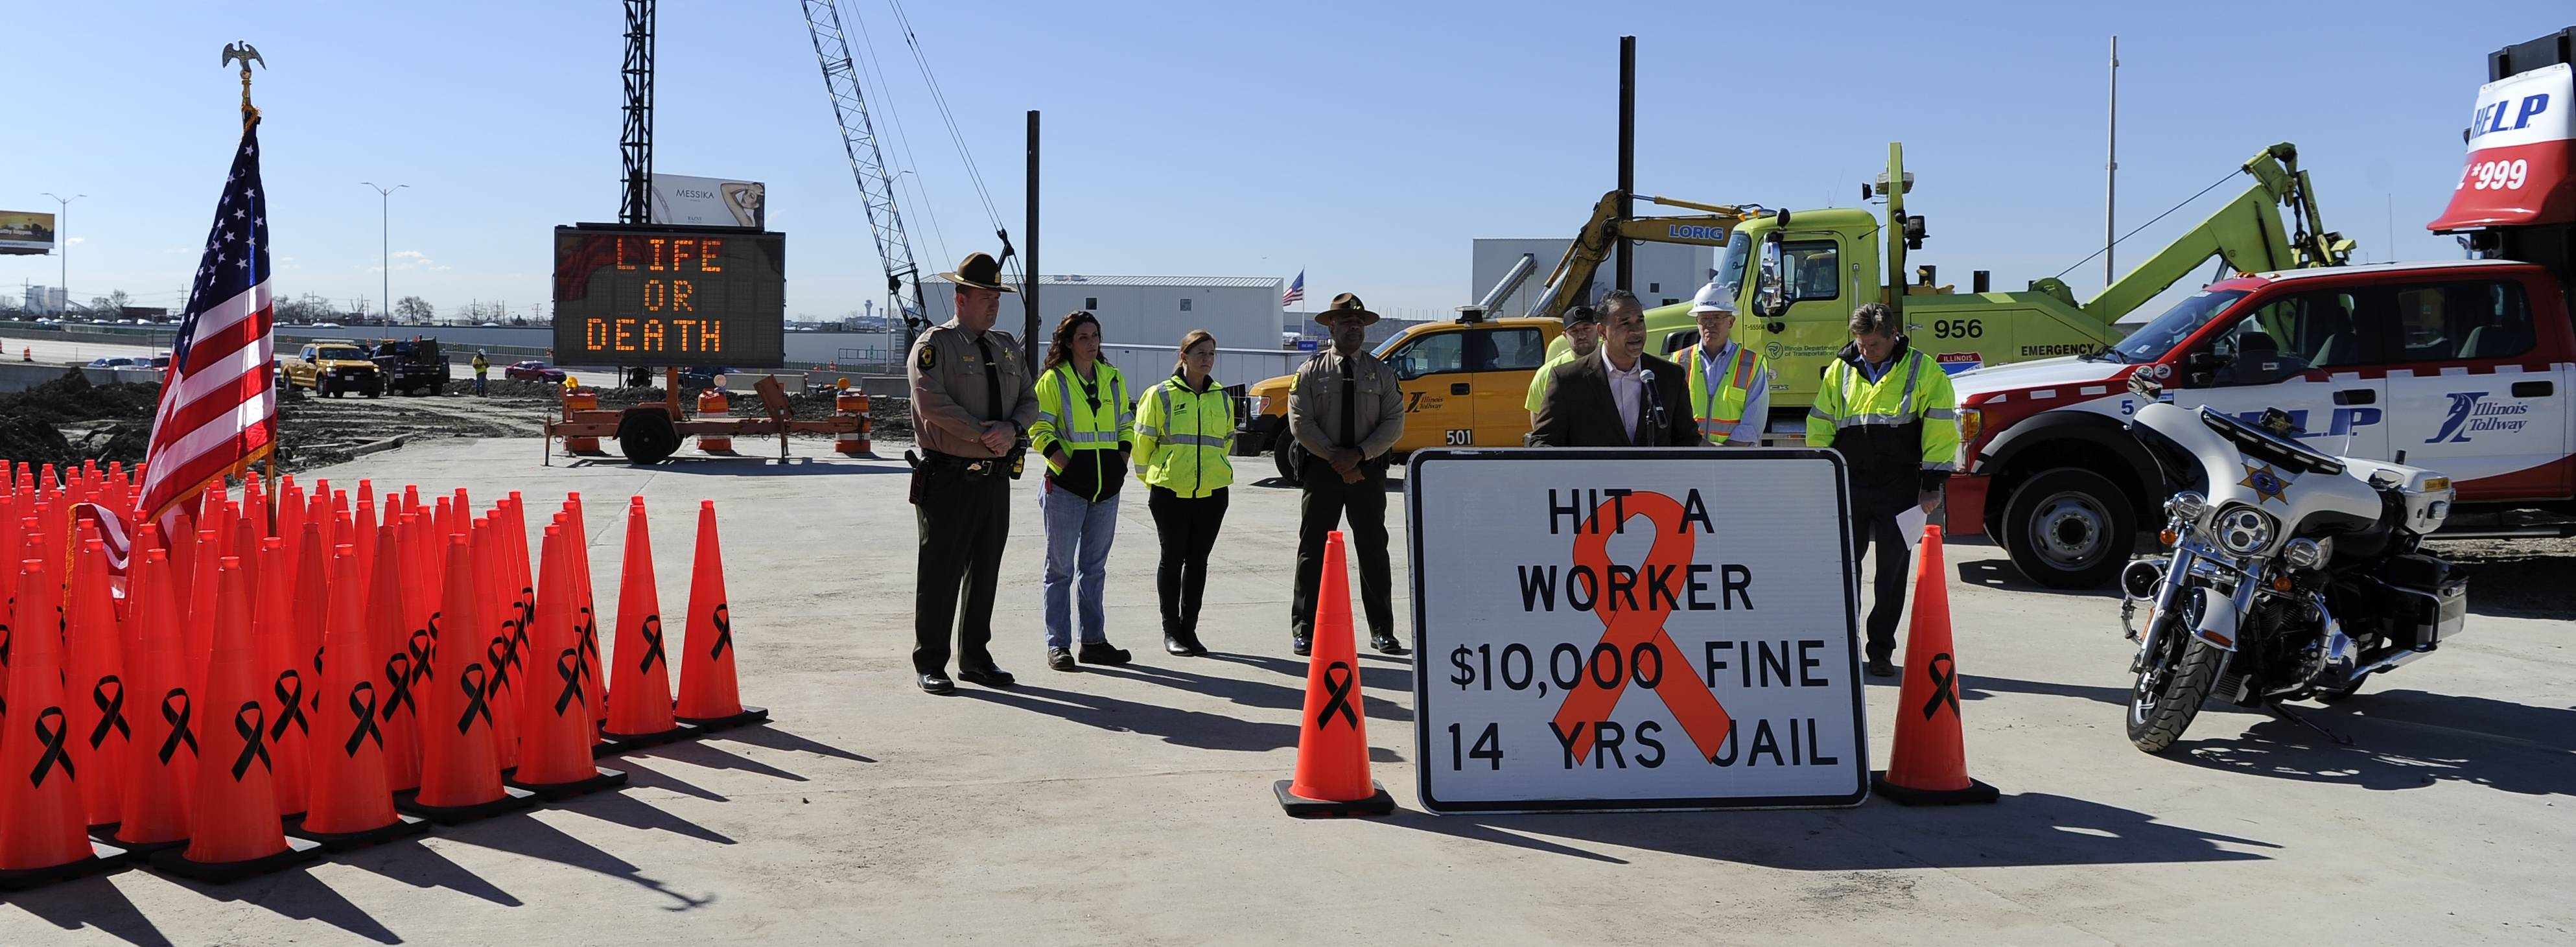 Illinois Department of Transportation and Illinois tollway employees urge drivers to watch out for workers as road construction ramps up this year. The traffic cones represent workers killed in crashes in work zones.